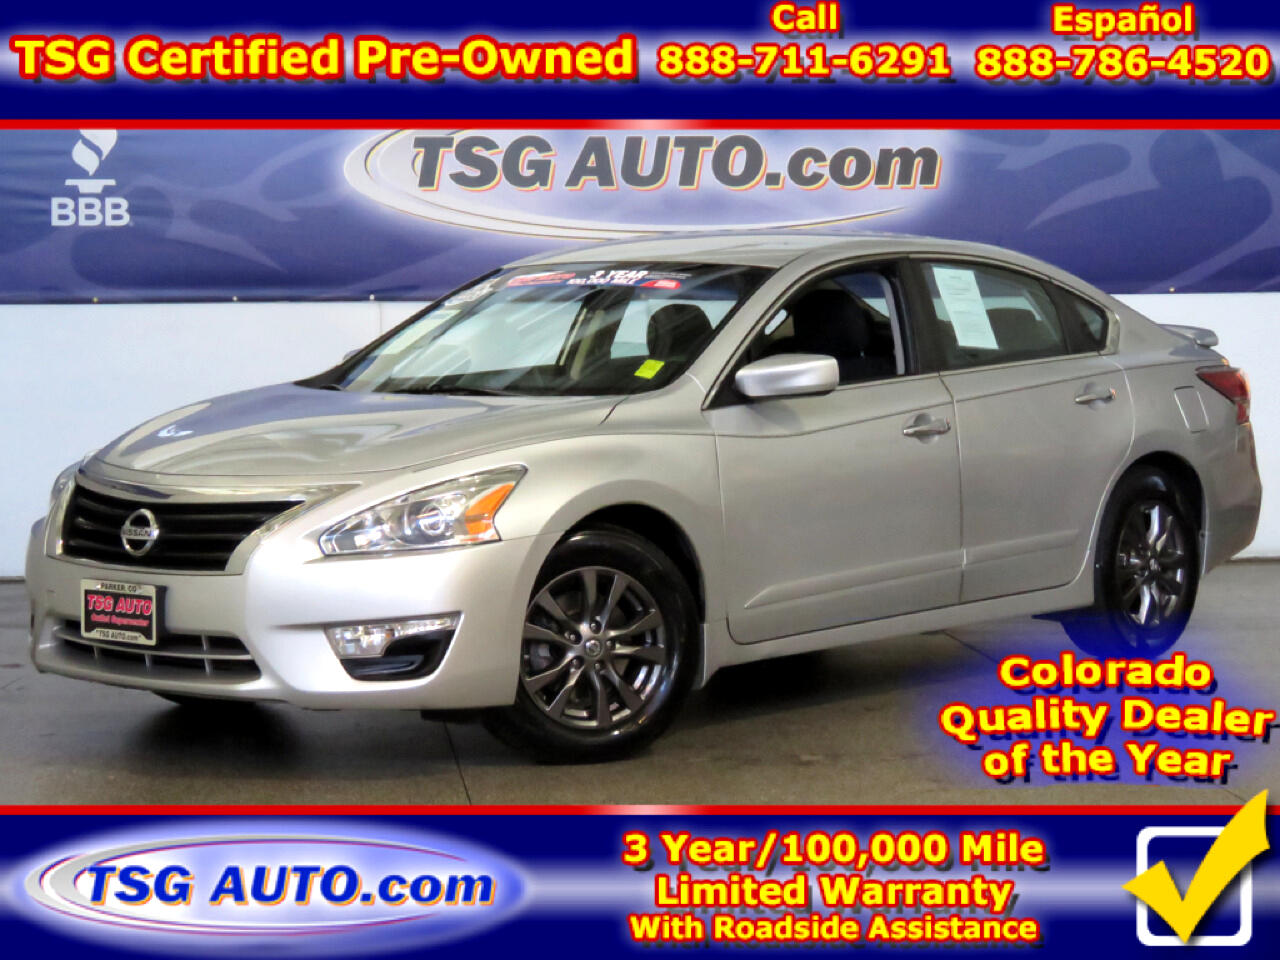 2015 Nissan Altima S Special Edition 2.5L I4